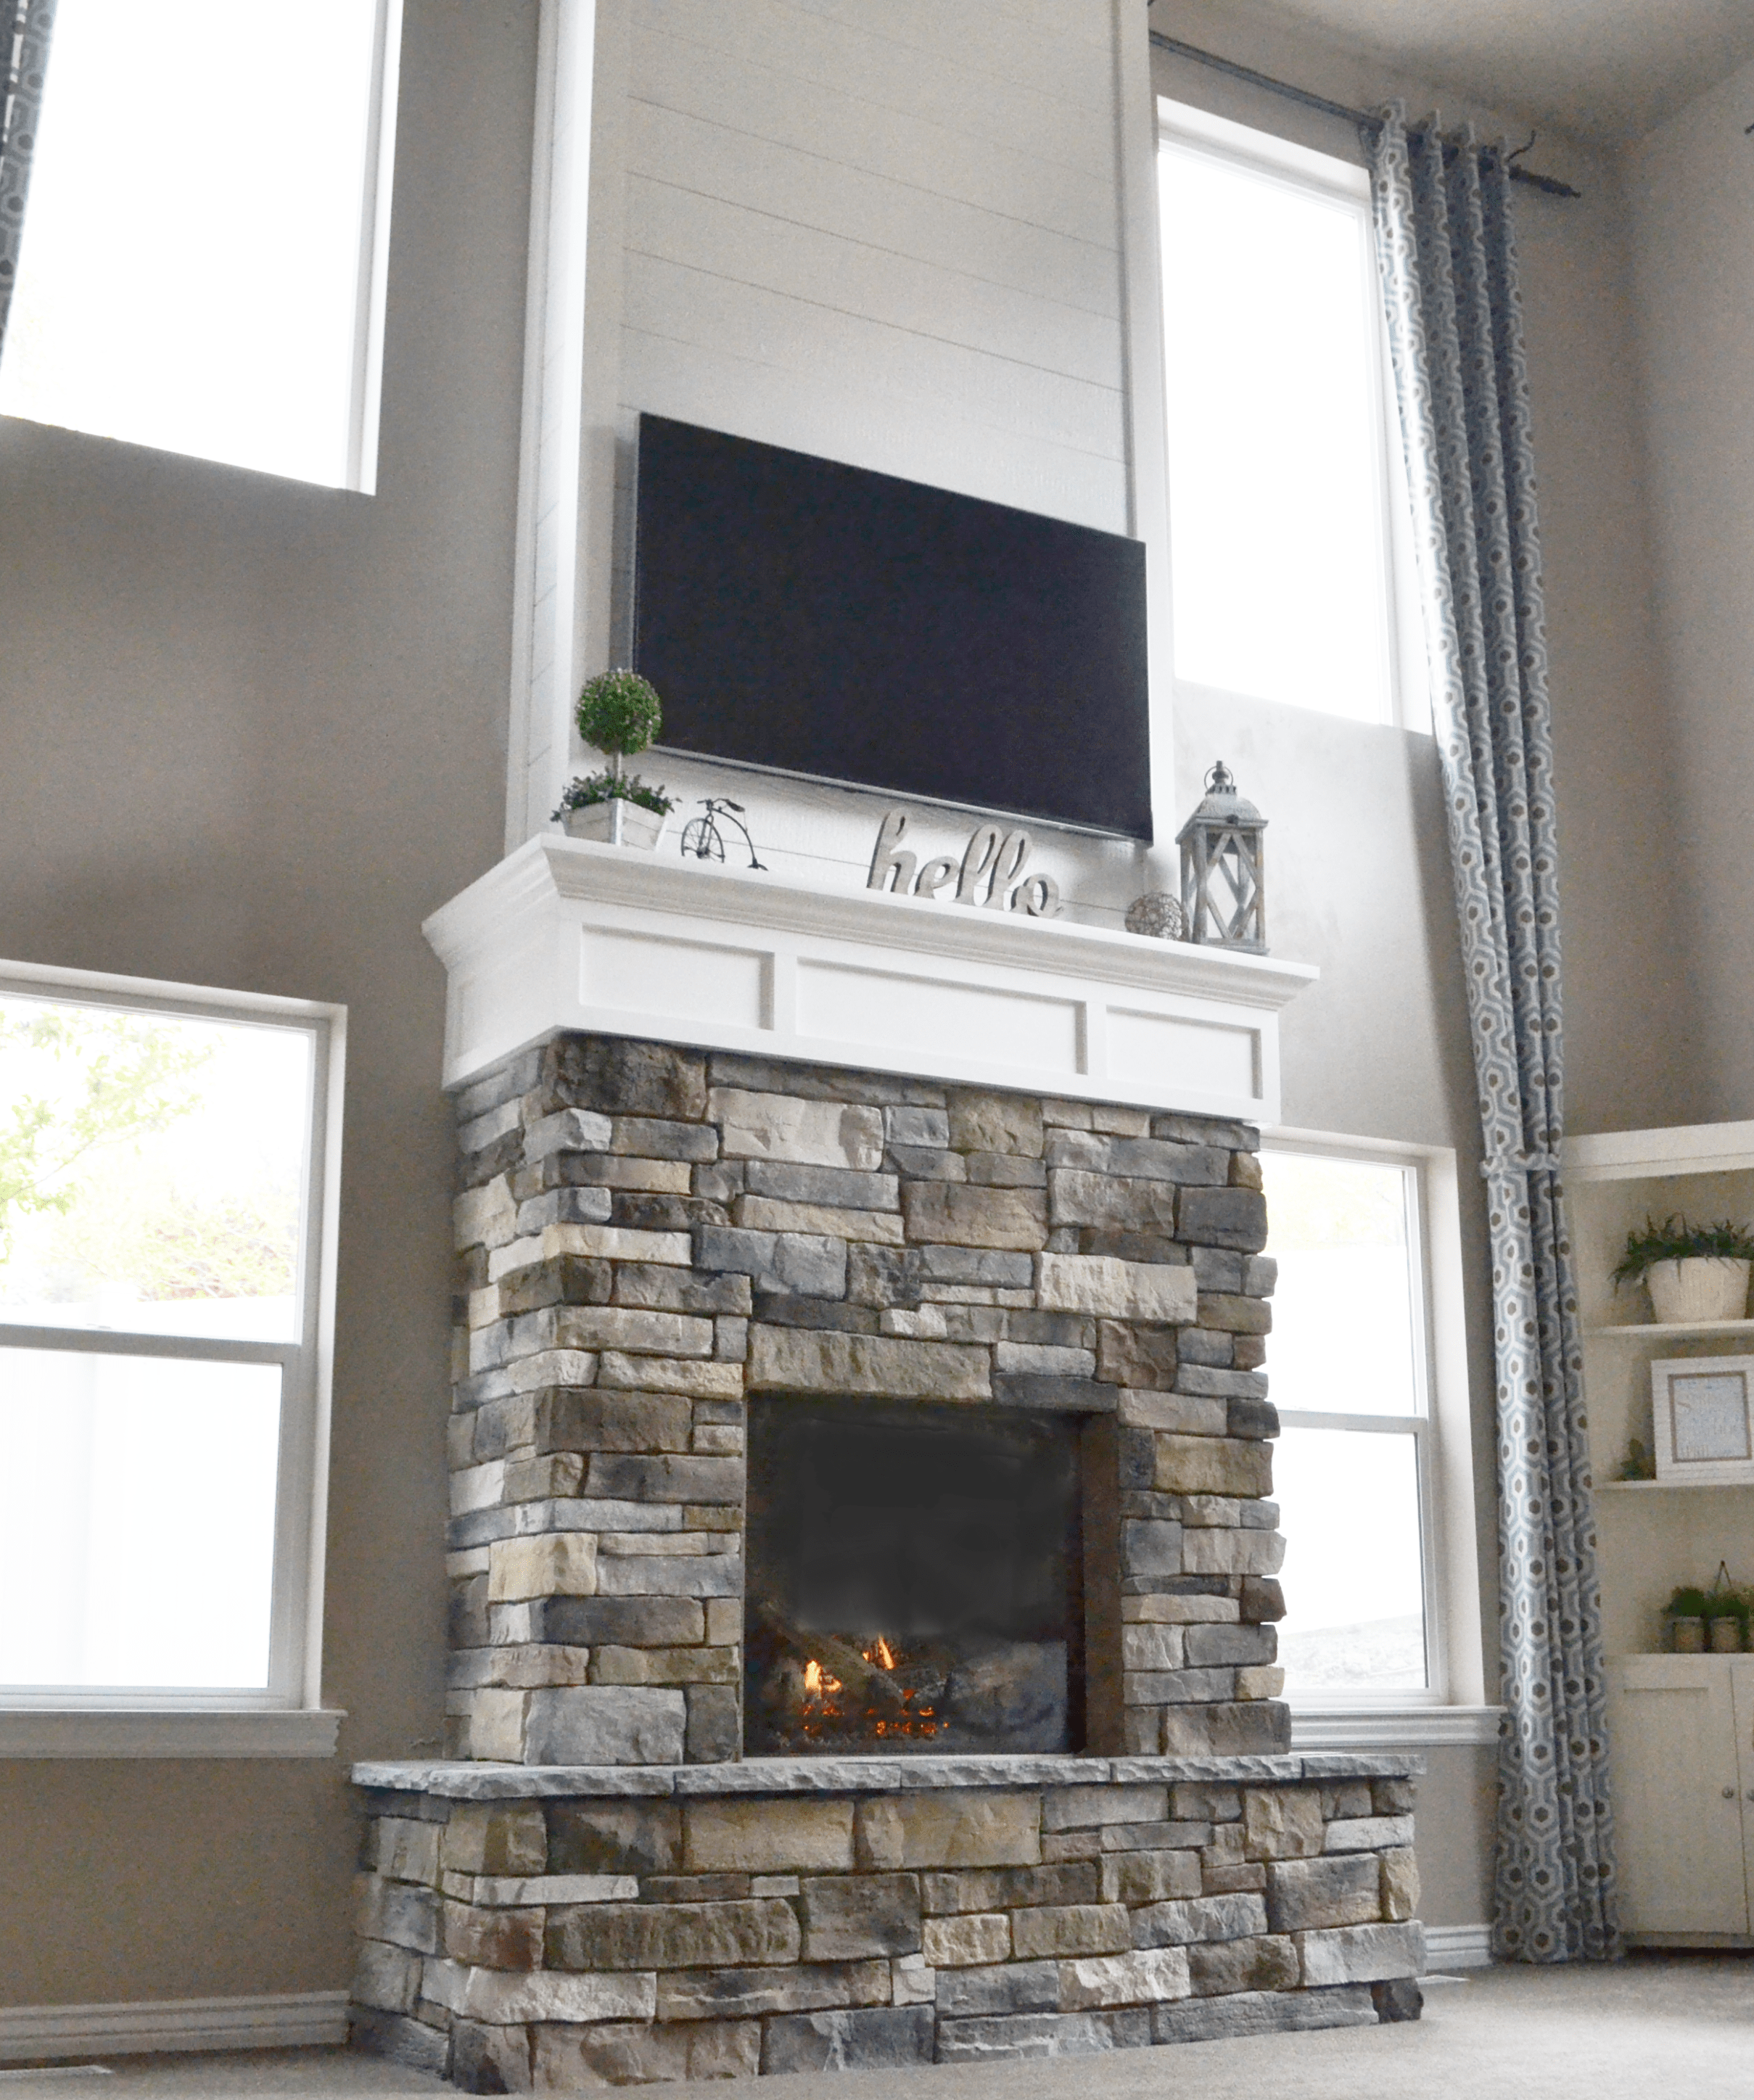 Diy Stone Fireplace Unique Diy Fireplace with Stone & Shiplap